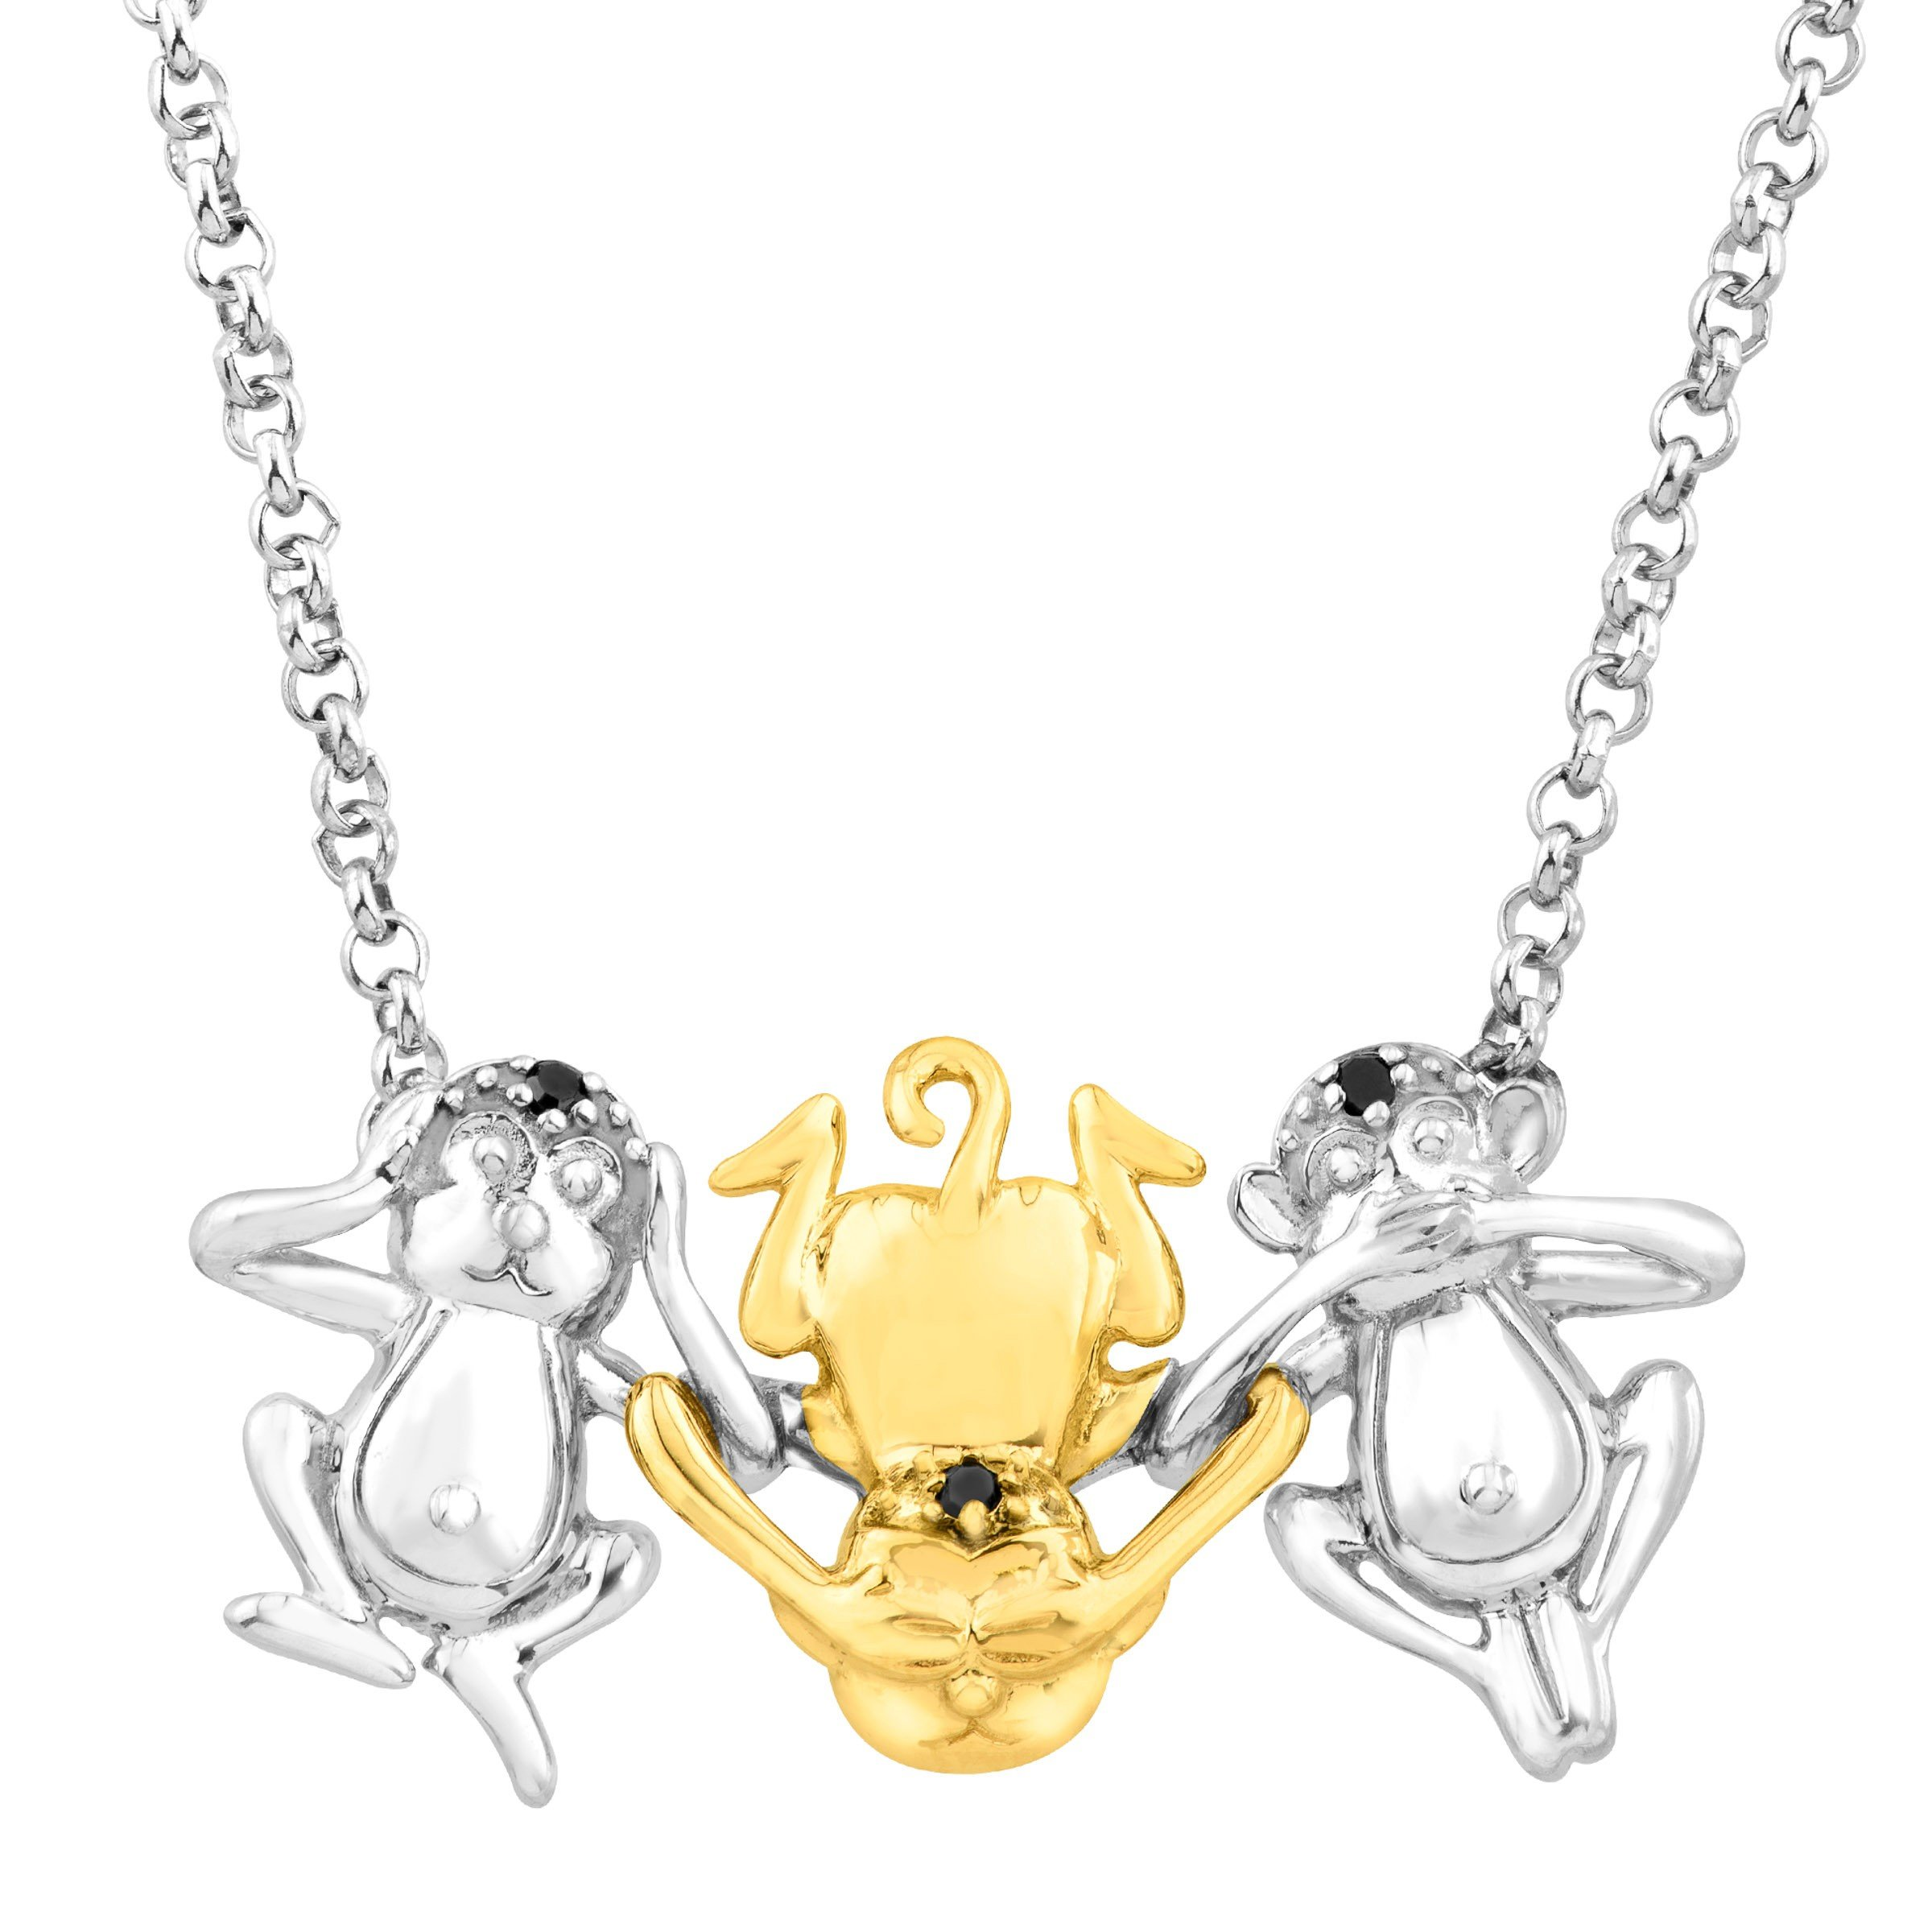 Three Wise Monkey Necklace with Enhanced Black Diamonds in Sterling Silver & 14K Gold